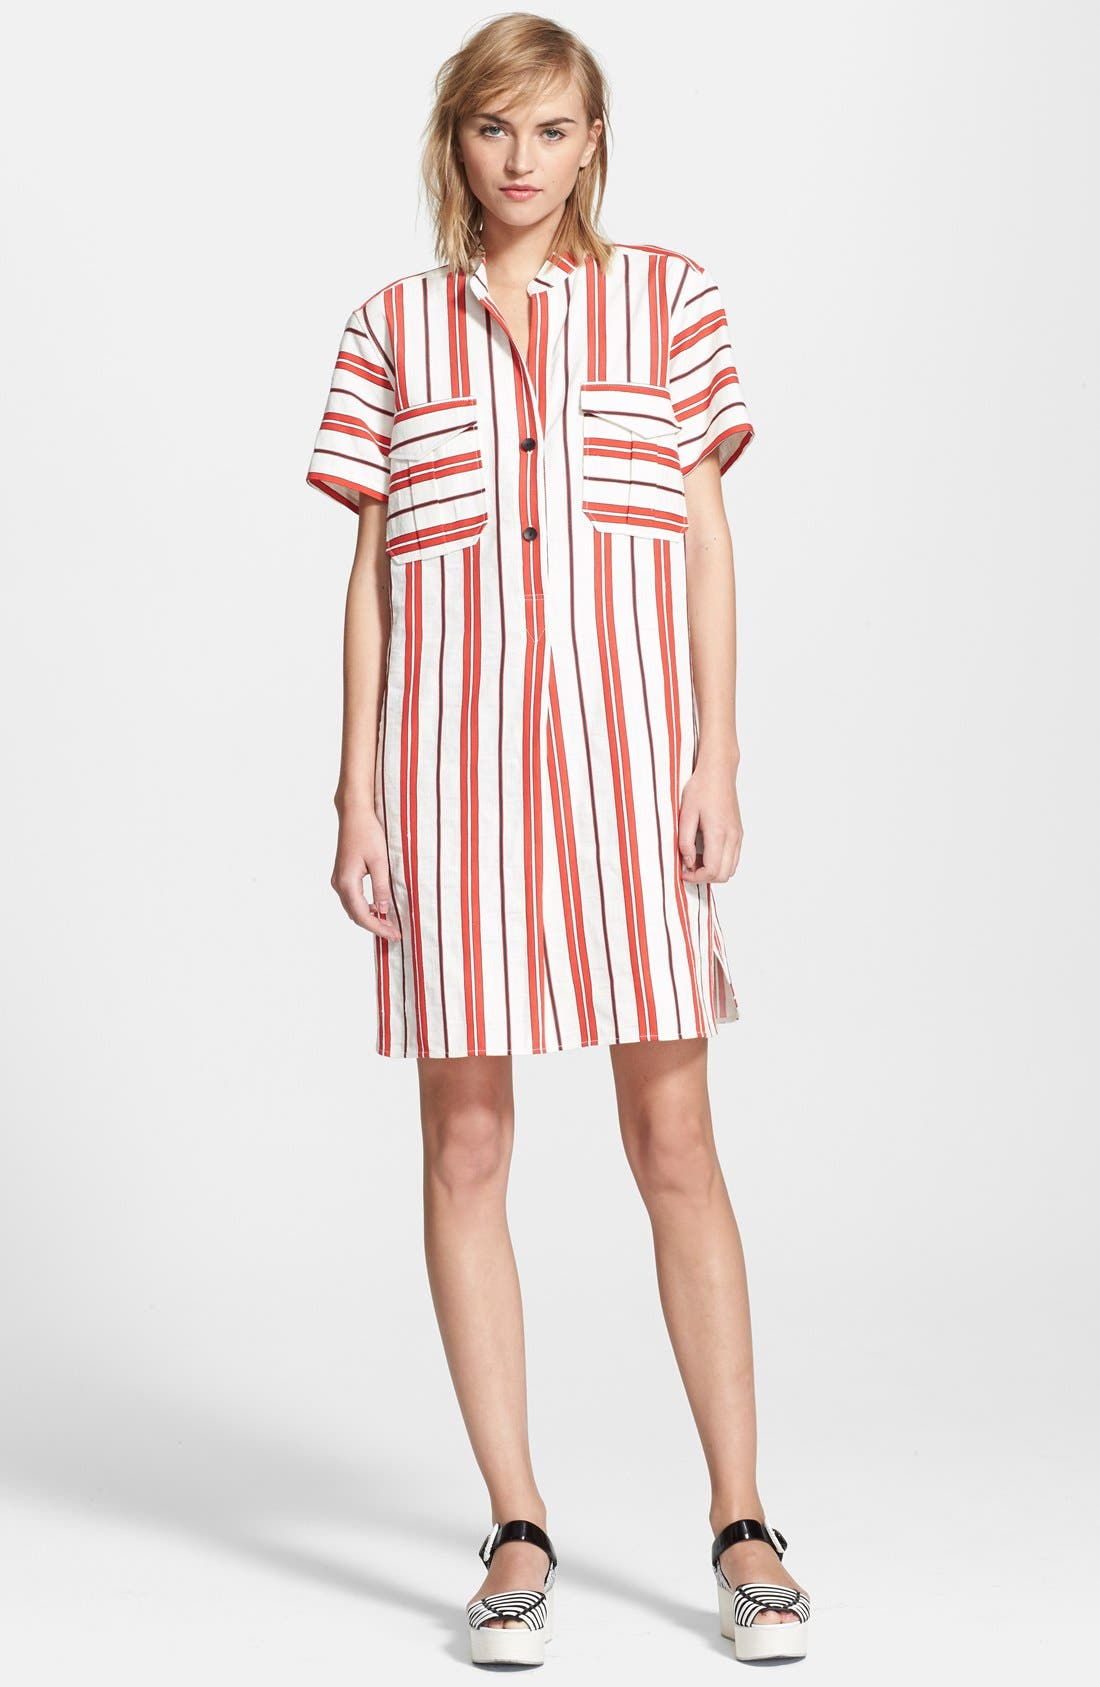 Alternate Image 1 Selected - Creatures of the Wind 'Danae' Stripe Cotton Linen Shirtdress